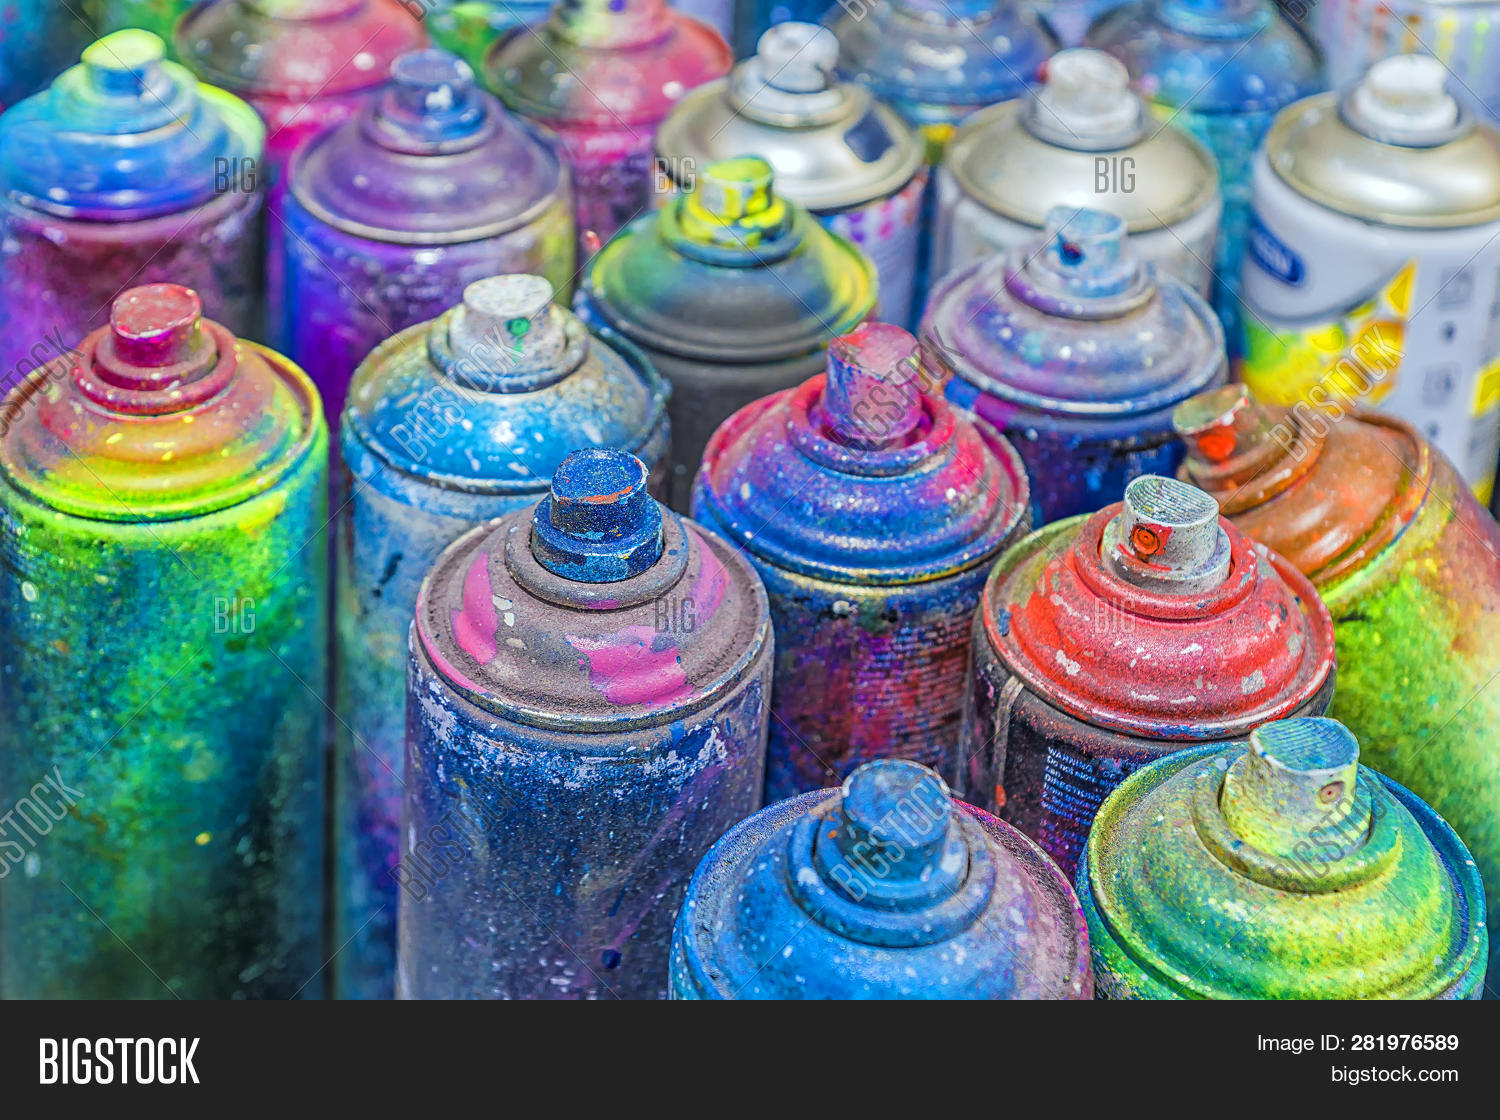 Used Cans Spray Paint Image & Photo (Free Trial) | Bigstock